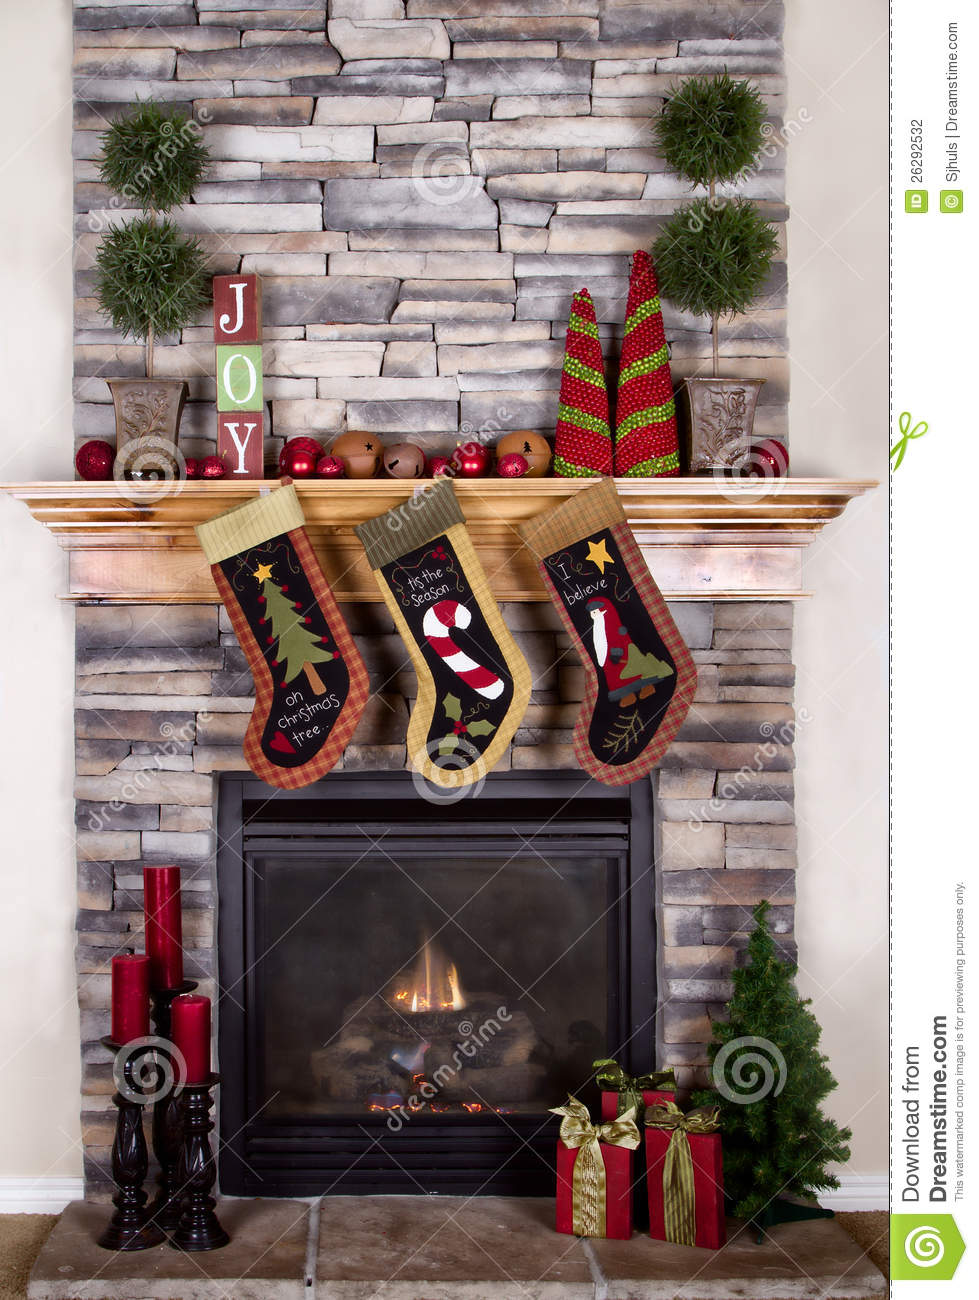 Christmas Stockings Hanging From Fireplace Stock